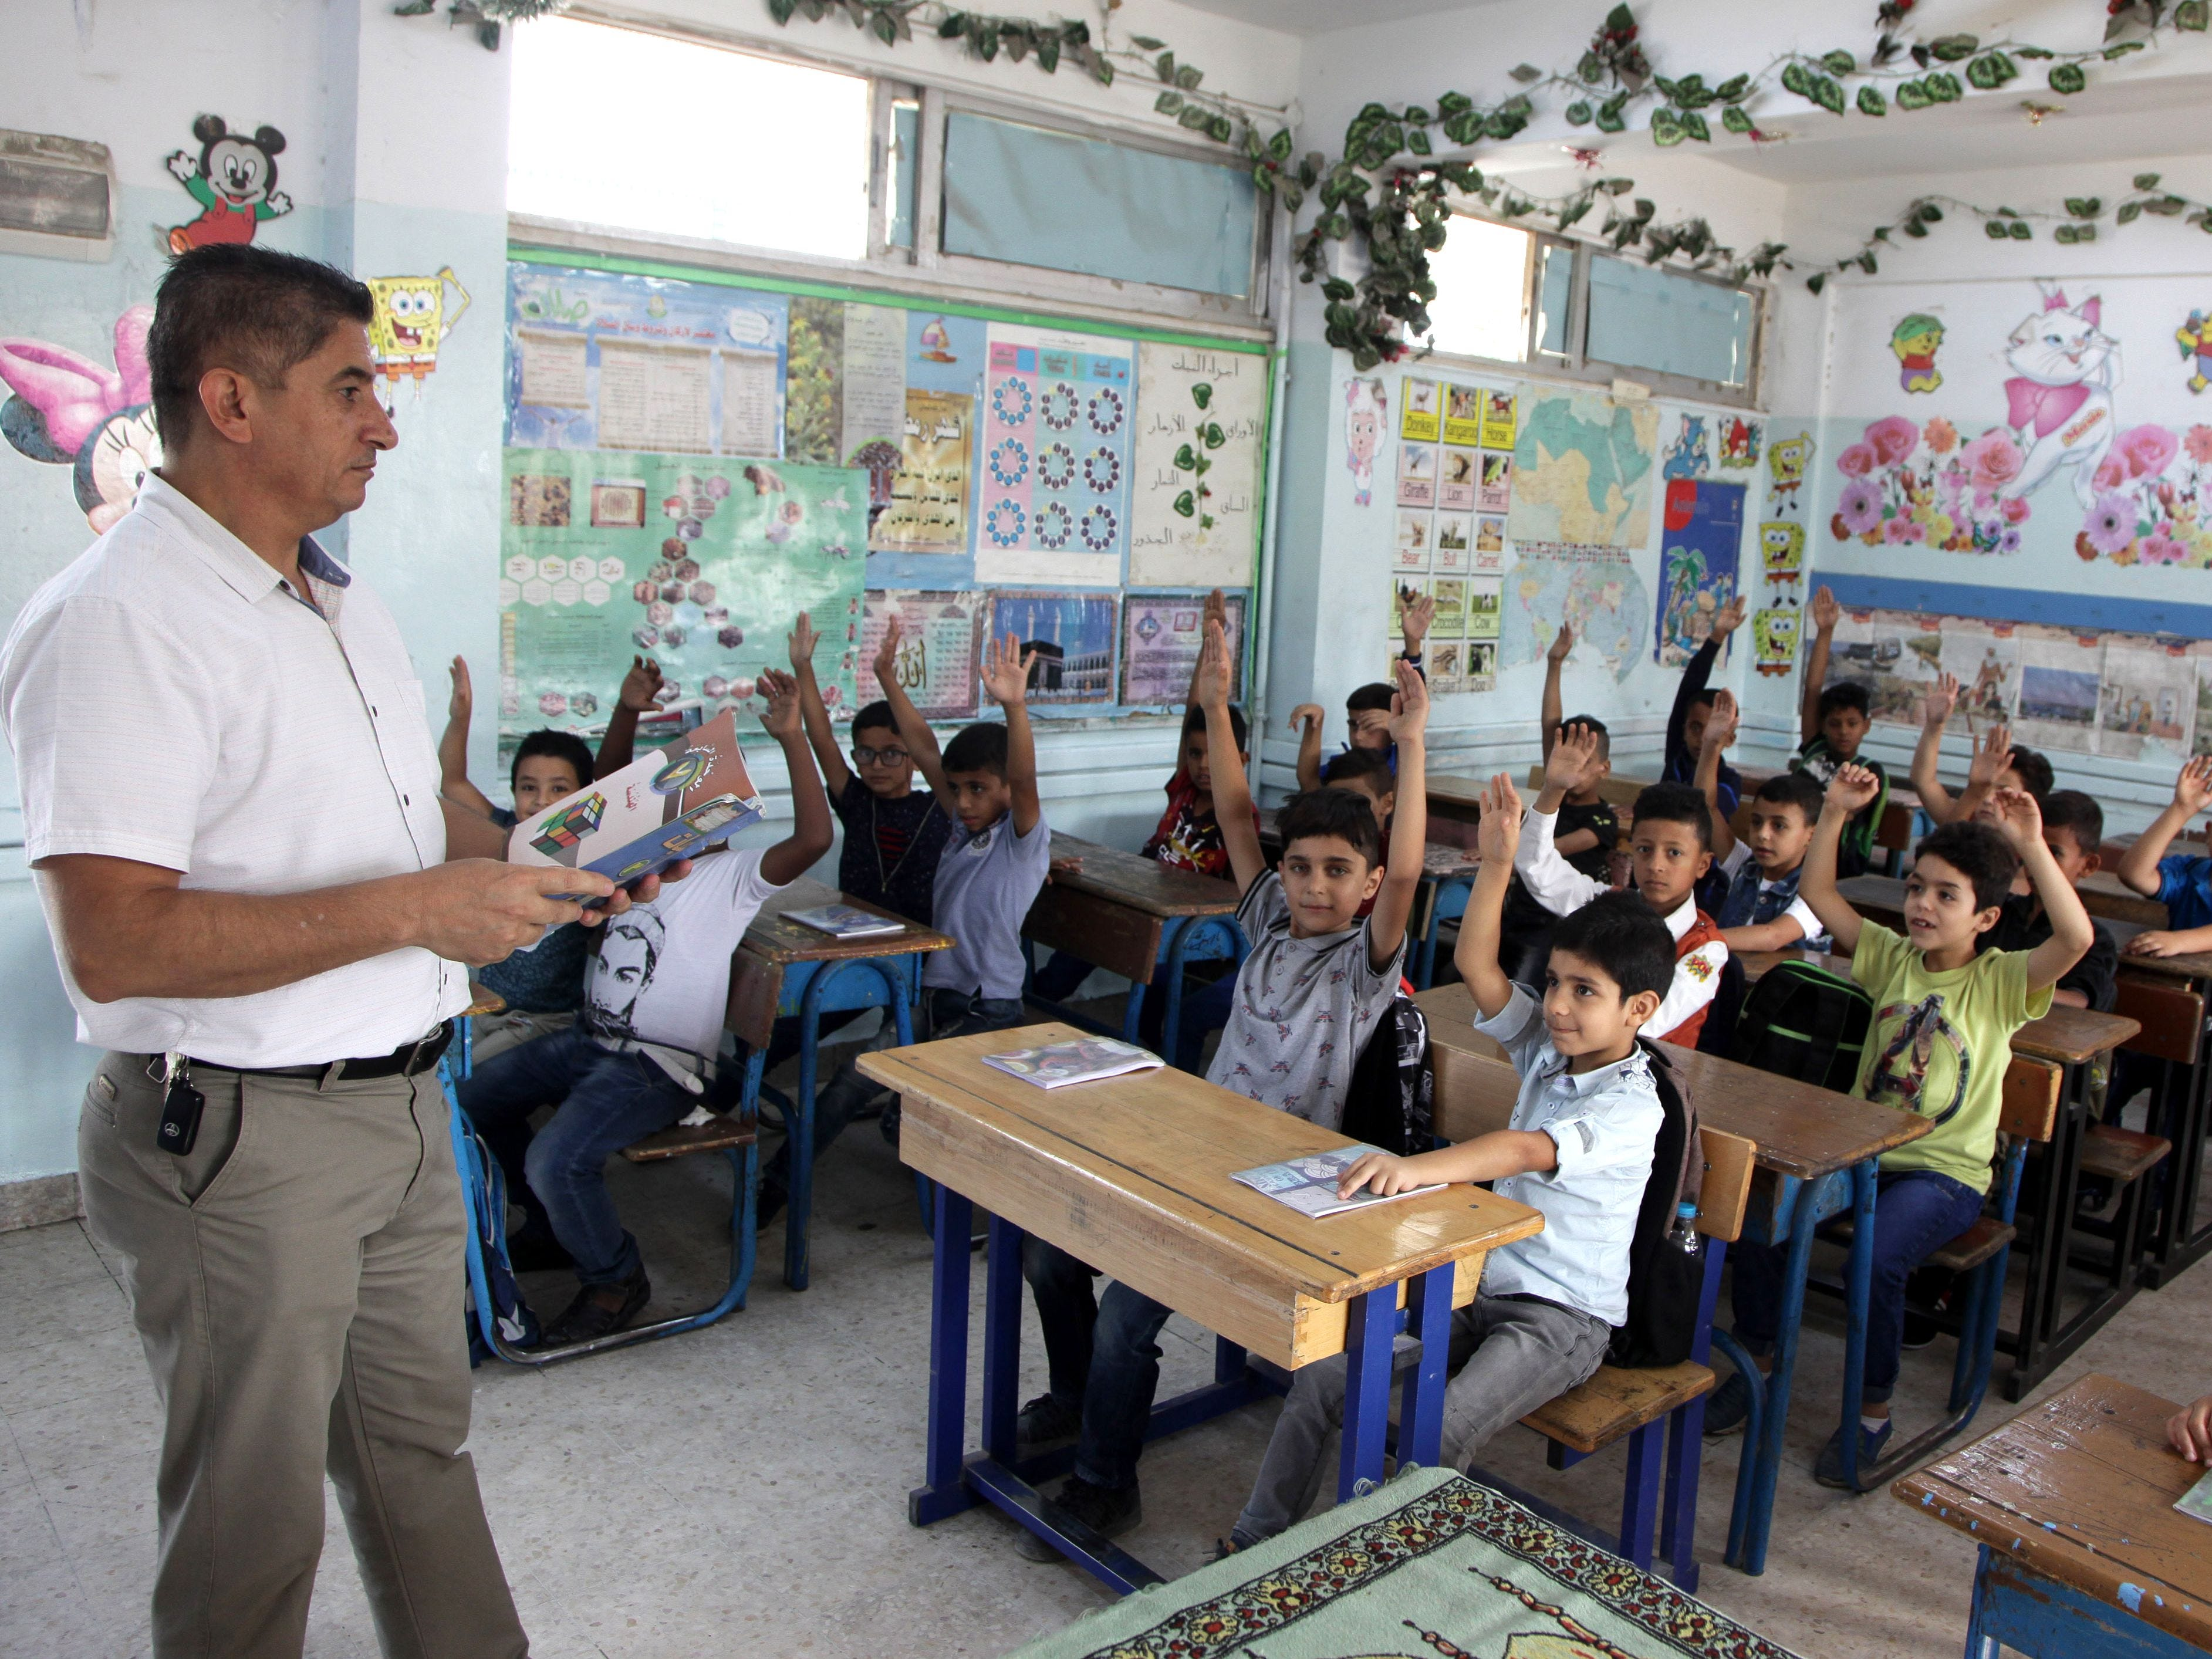 "Palestinian refugee pupils attend a lesson at a United nations Relief and Works Agency's (UNRWA, UN agency for Palestinian refugees) school, in the Al-Baqaa Palestinian refugee camp, near Amman, on 2 september 2018. - The UN agency for Palestinian refugees (UNRWA) has been a lifeline for millions of Palestinians since it was set up nearly 70 years ago. On August 31, the United States, by far the biggest contributor to the agency, announced it was halting its funding to the organisation, which it labelled ""irredeemably flawed"". (Photo by AHMAD ABDO / AFP)AHMAD ABDO/AFP/Getty Images ORIG FILE ID: AFP_18S64S"